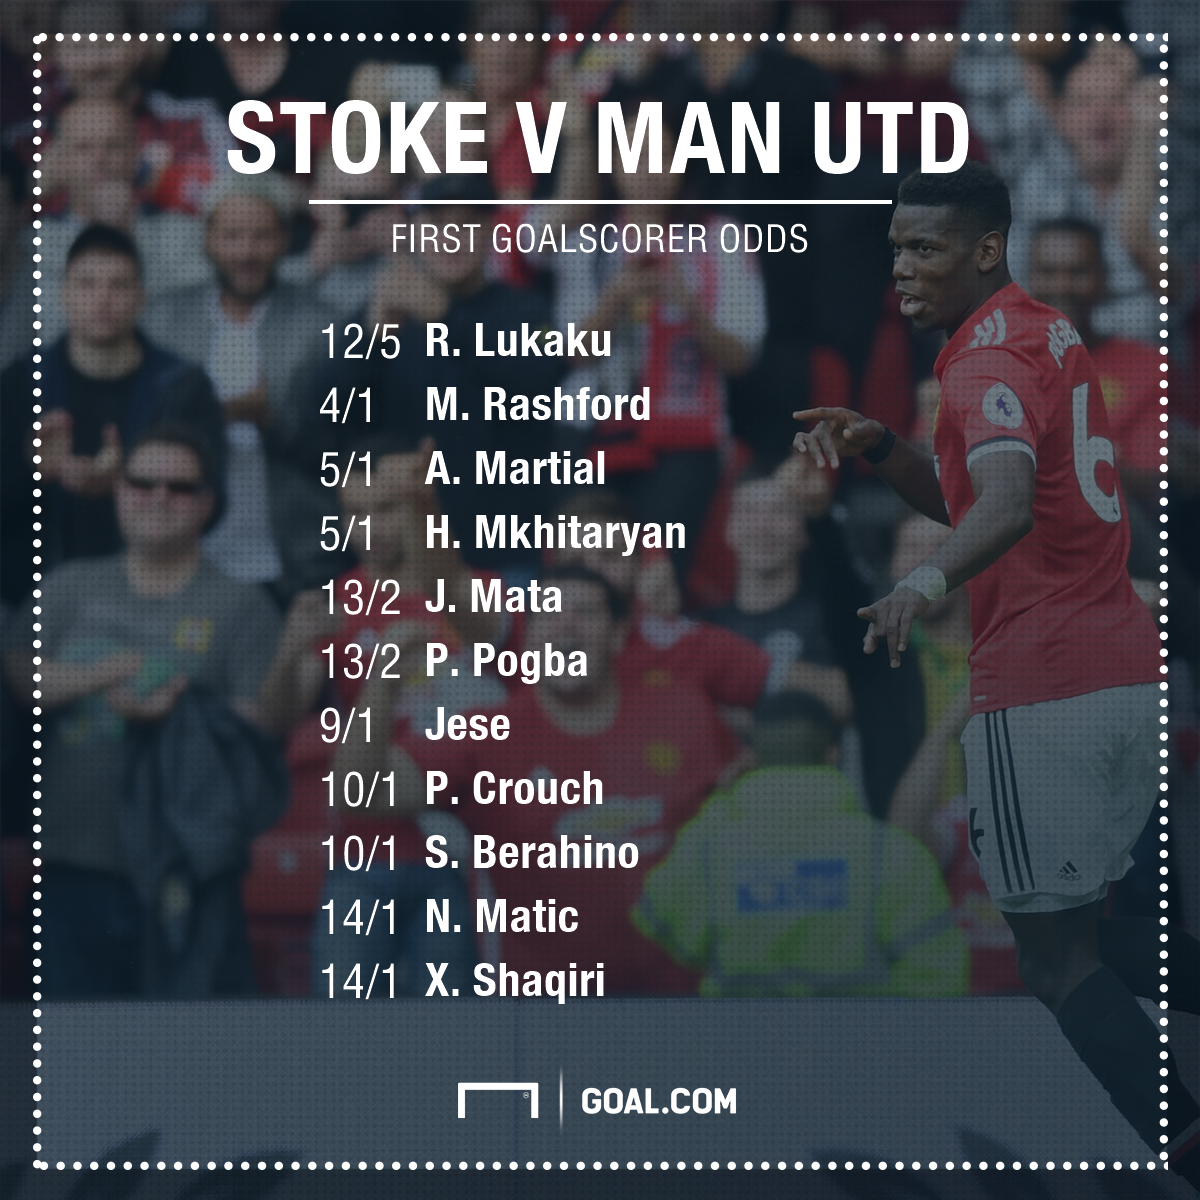 Stoke City Manchester United odds